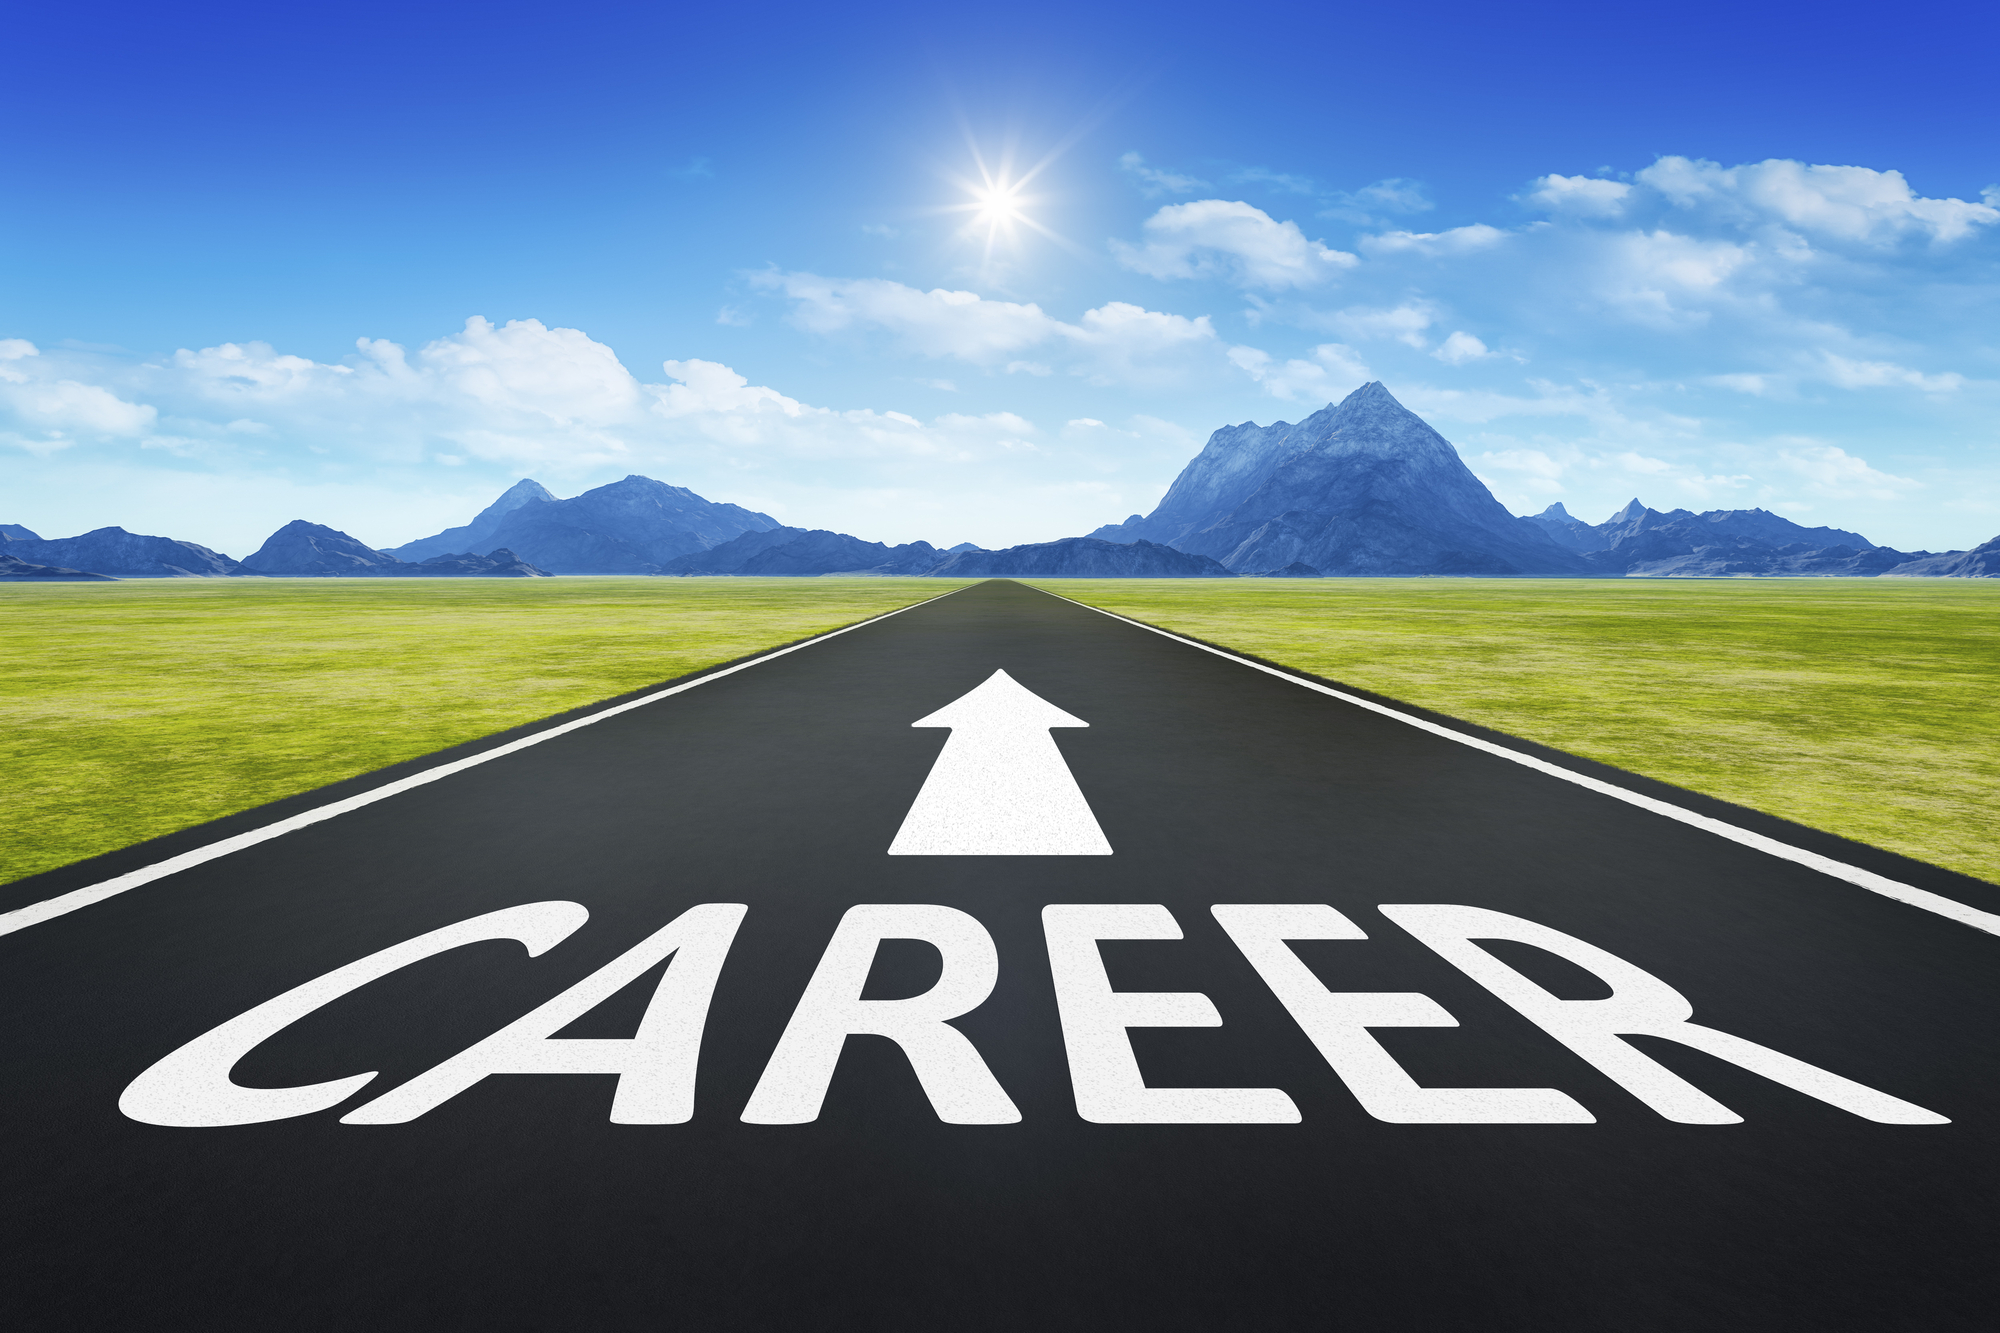 Property Management Career Paths On Paved Road With Arrow Through Desert